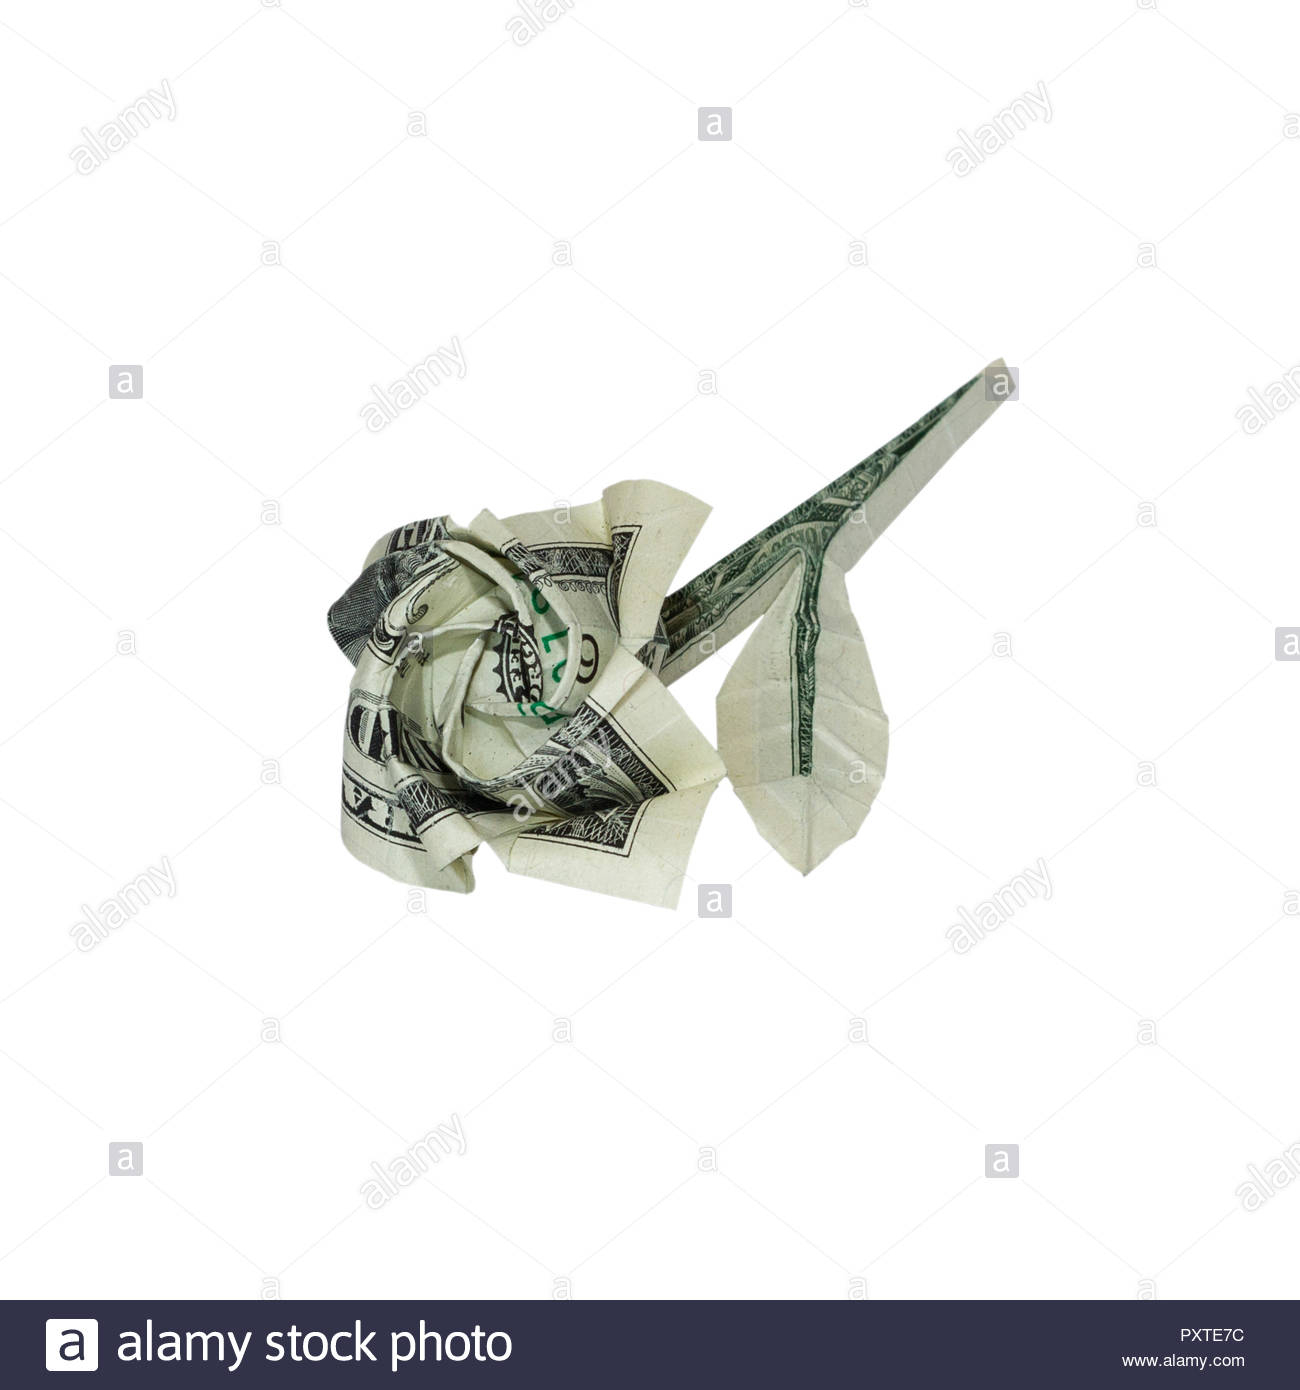 Dollar Bill Origami Money Origami Rose Flower Folded With Real One Dollar Bill Isolated